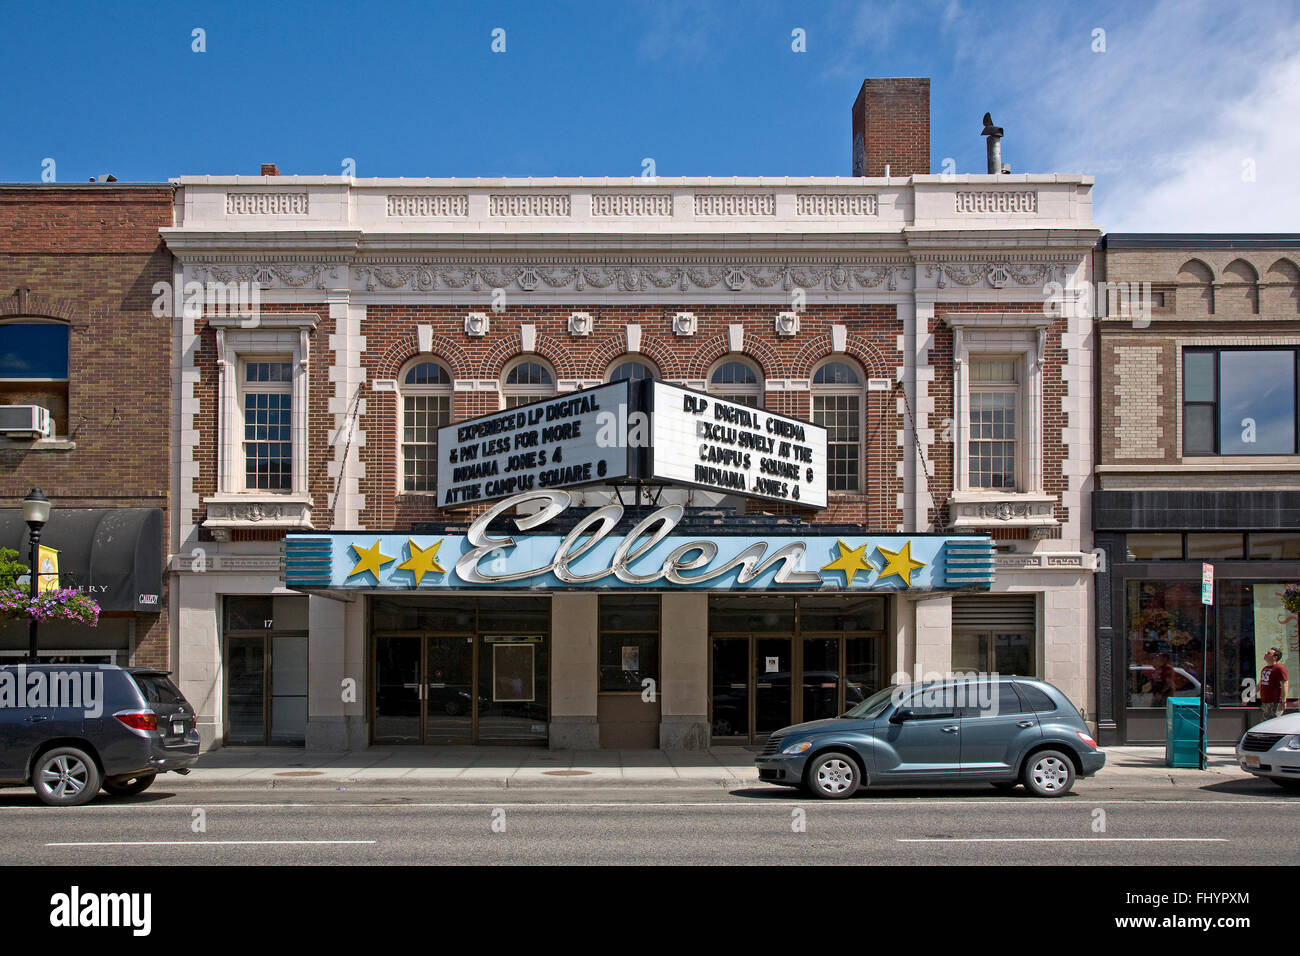 Results for Movie in Bozeman, MT. Get free custom quotes, customer reviews, prices, contact details, opening hours from Bozeman, MT based businesses with Movie keyword.